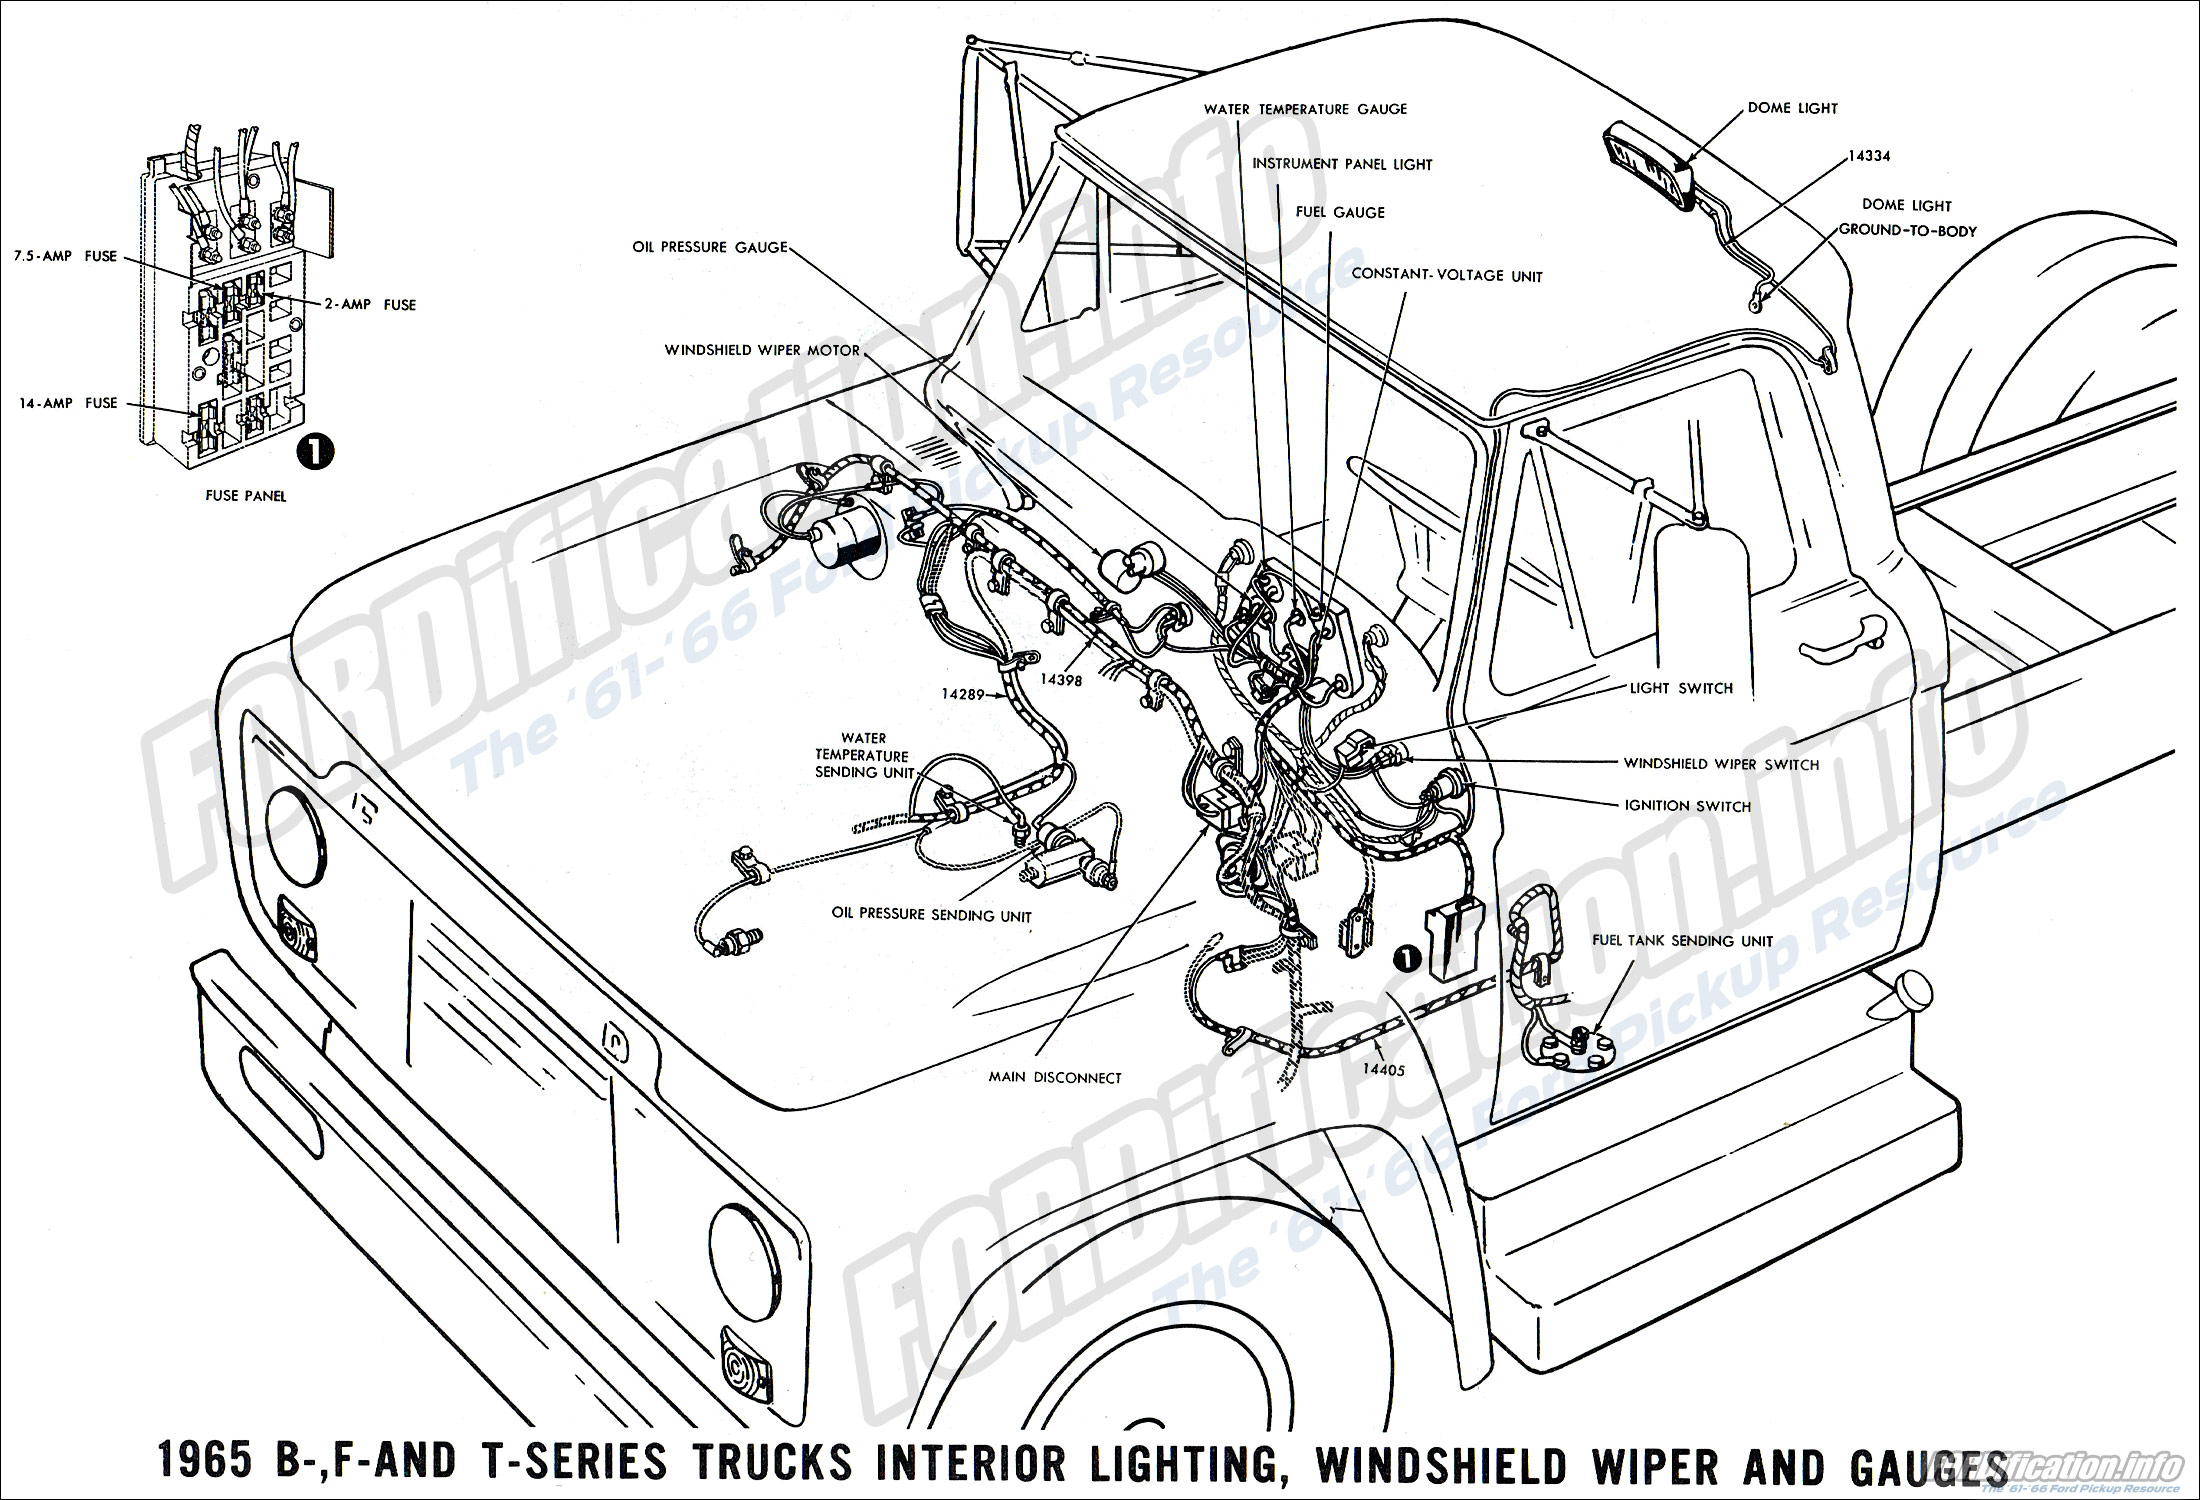 1965 ford truck wiring diagrams fordification info the 61 66 rh fordification info 1965 ford f250 wiring diagram 1965 ford f100 steering column wiring diagram